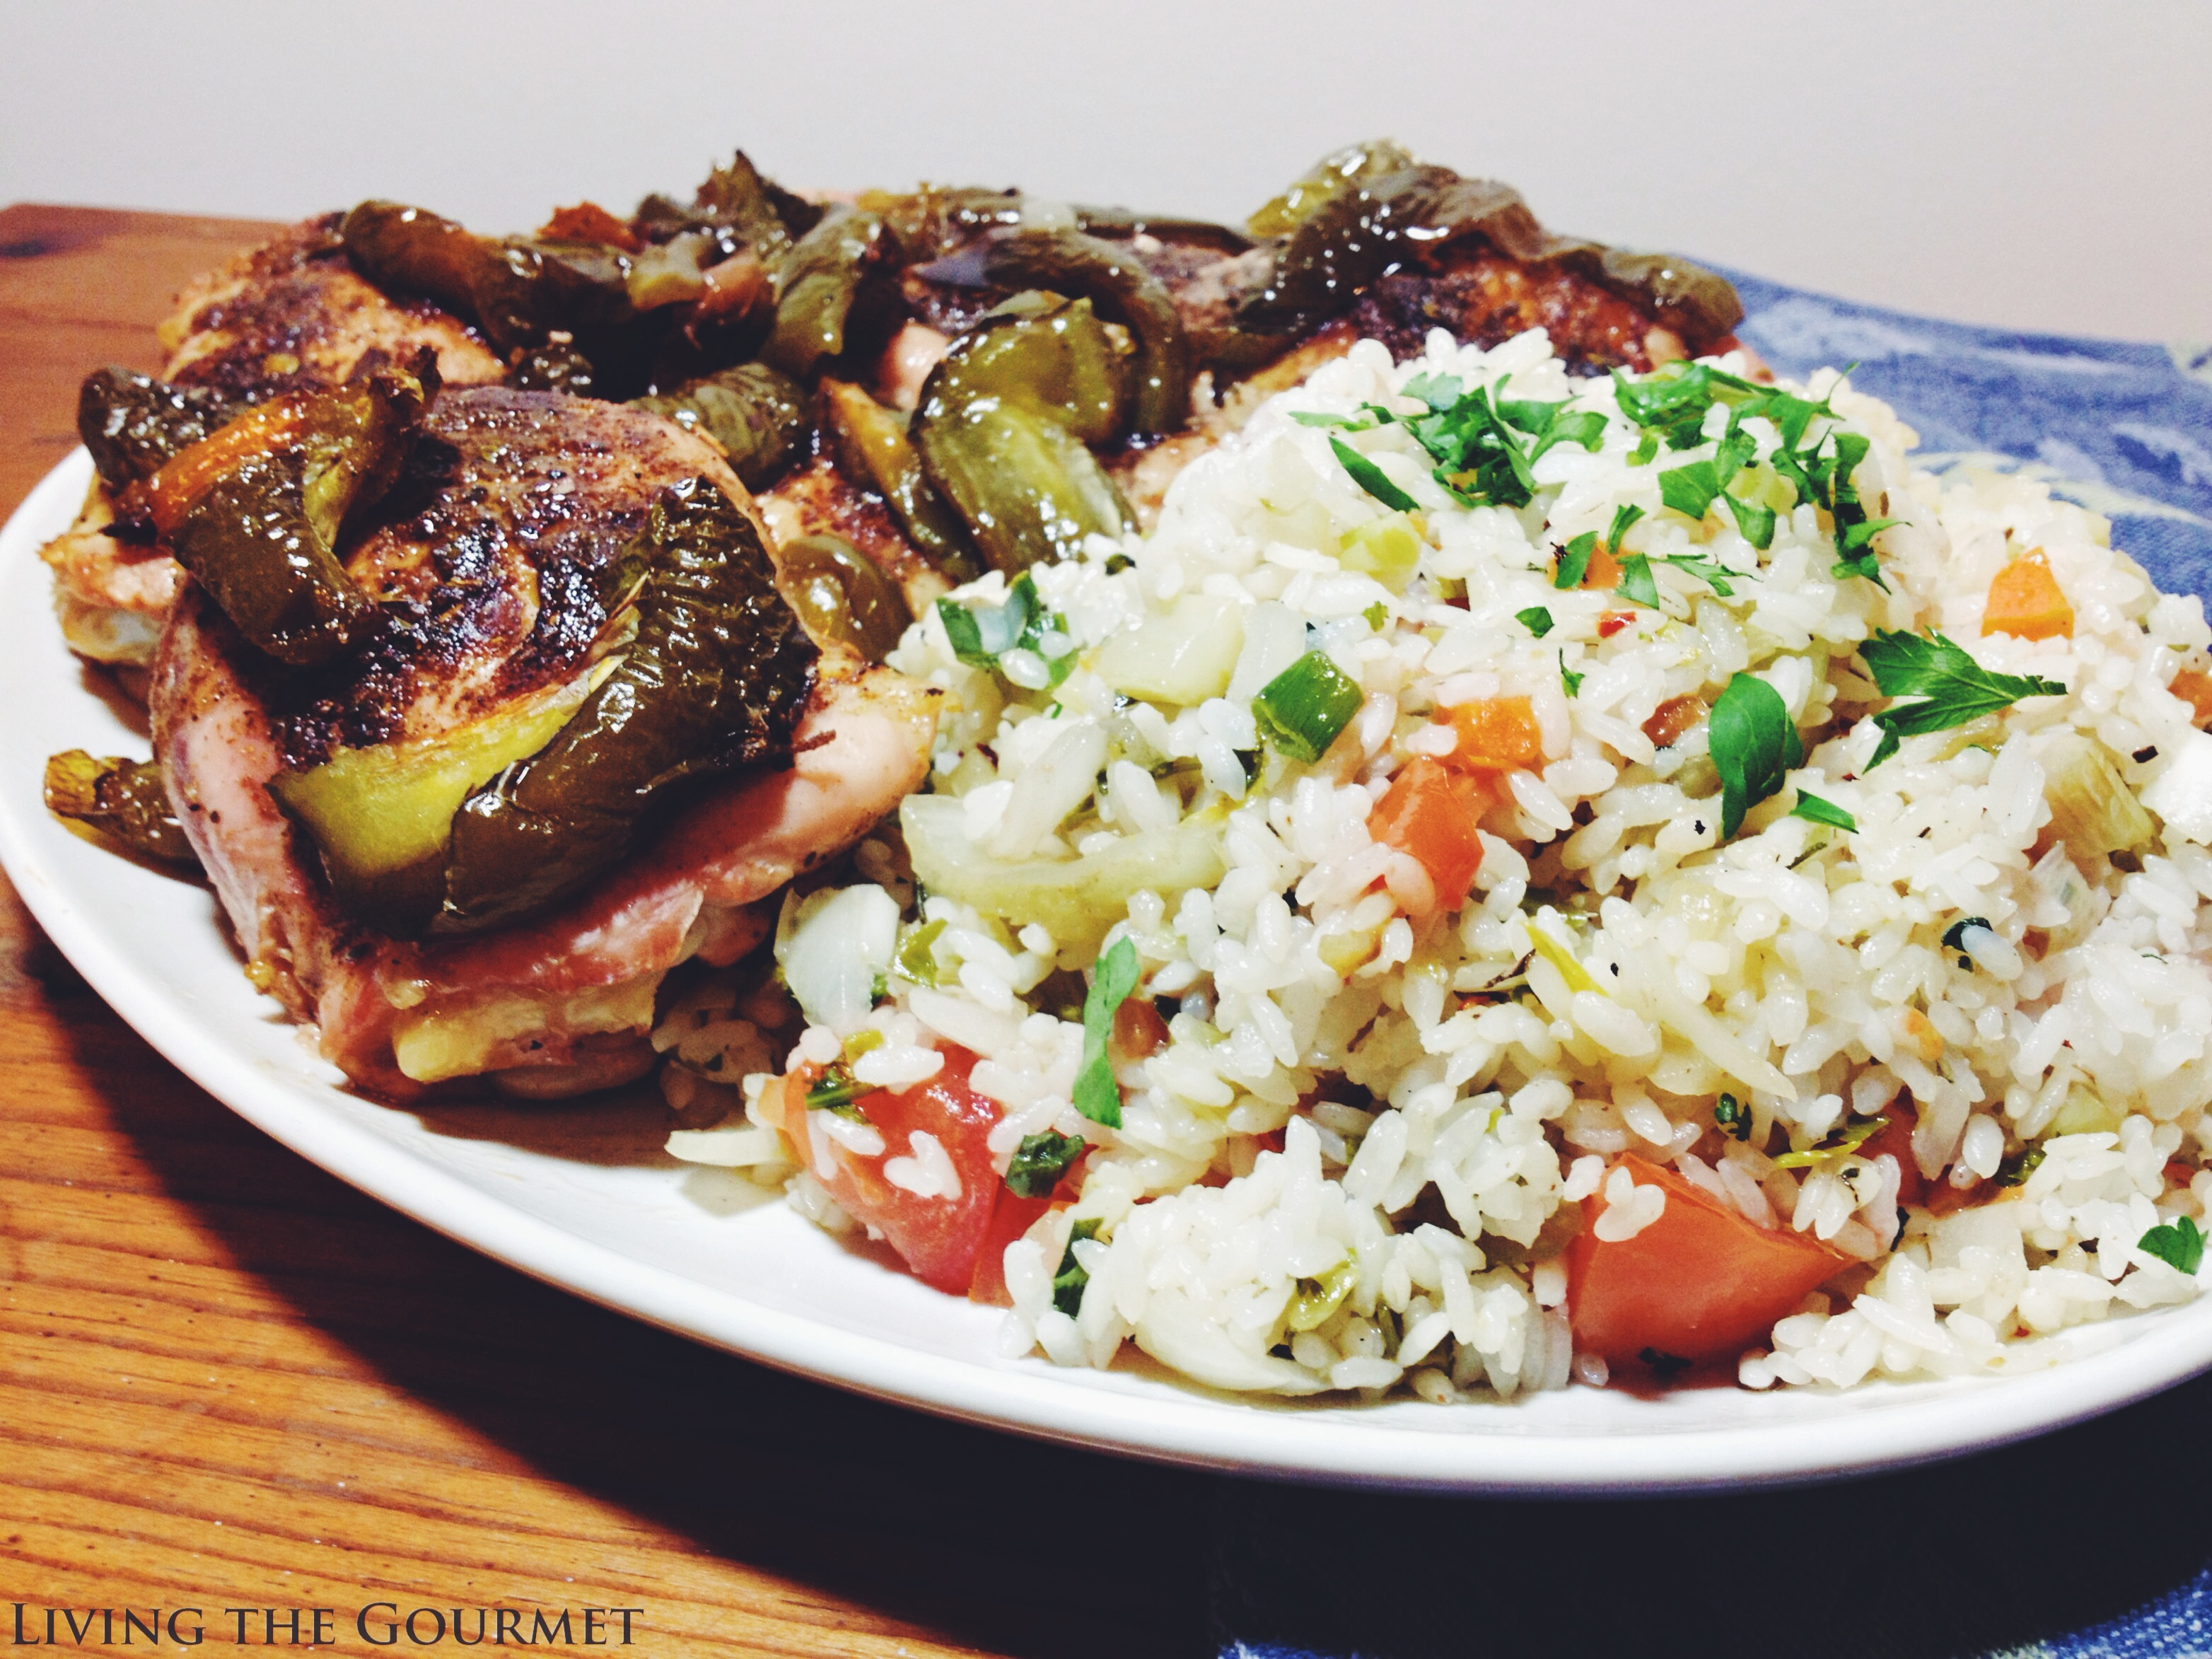 Living the Gourmet: Chicken with Peppers & Rice